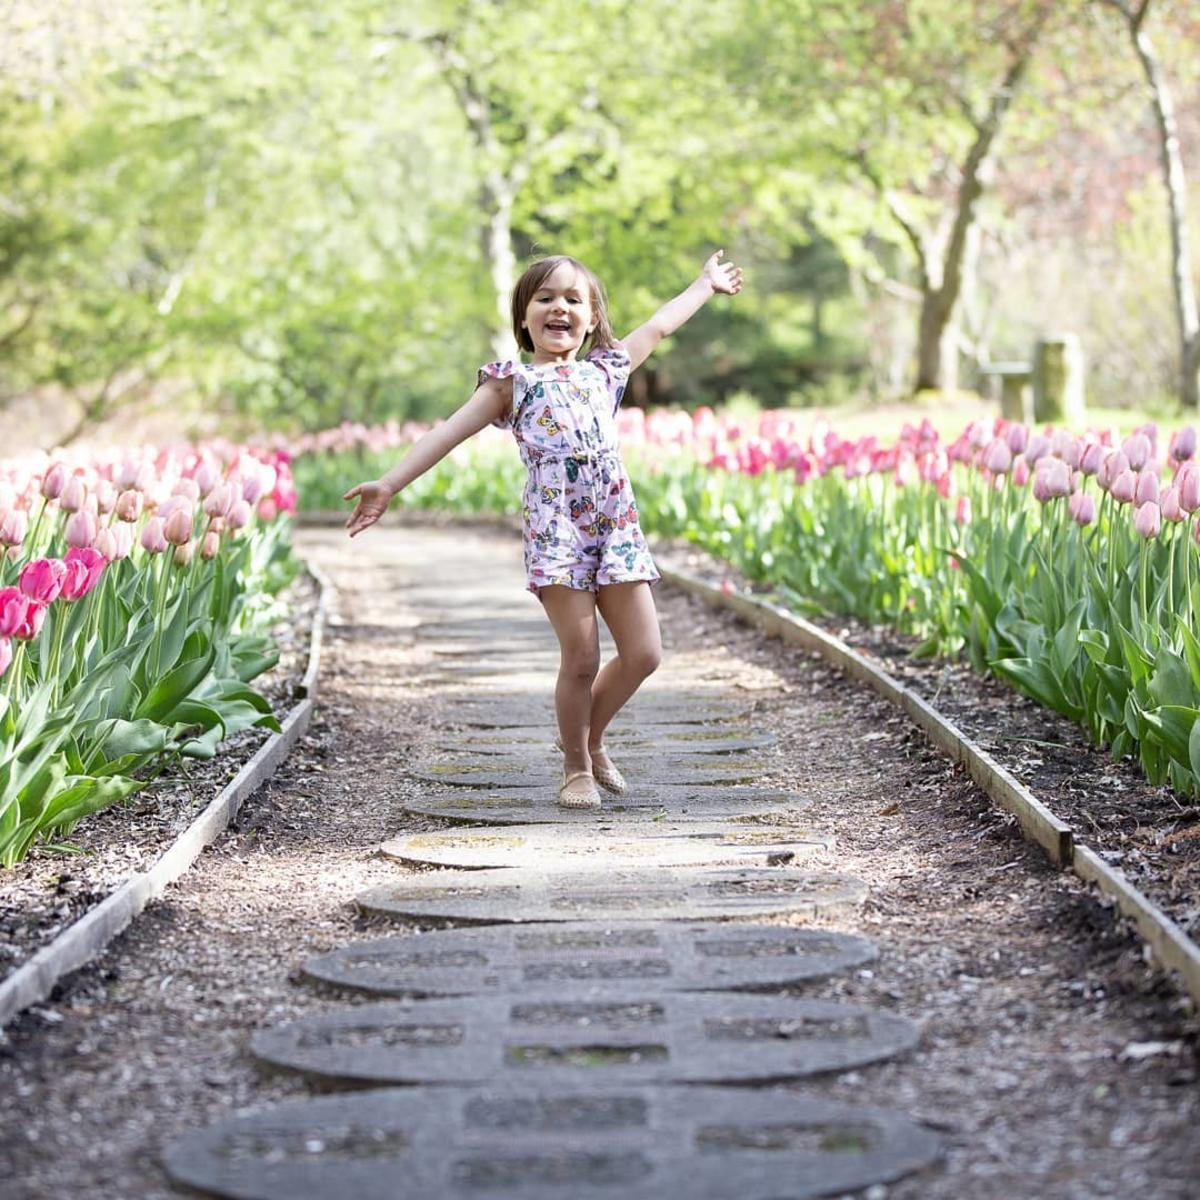 Little girl running barefoot along a path lined with tulips in full bloom at Dow Gardens in Midland